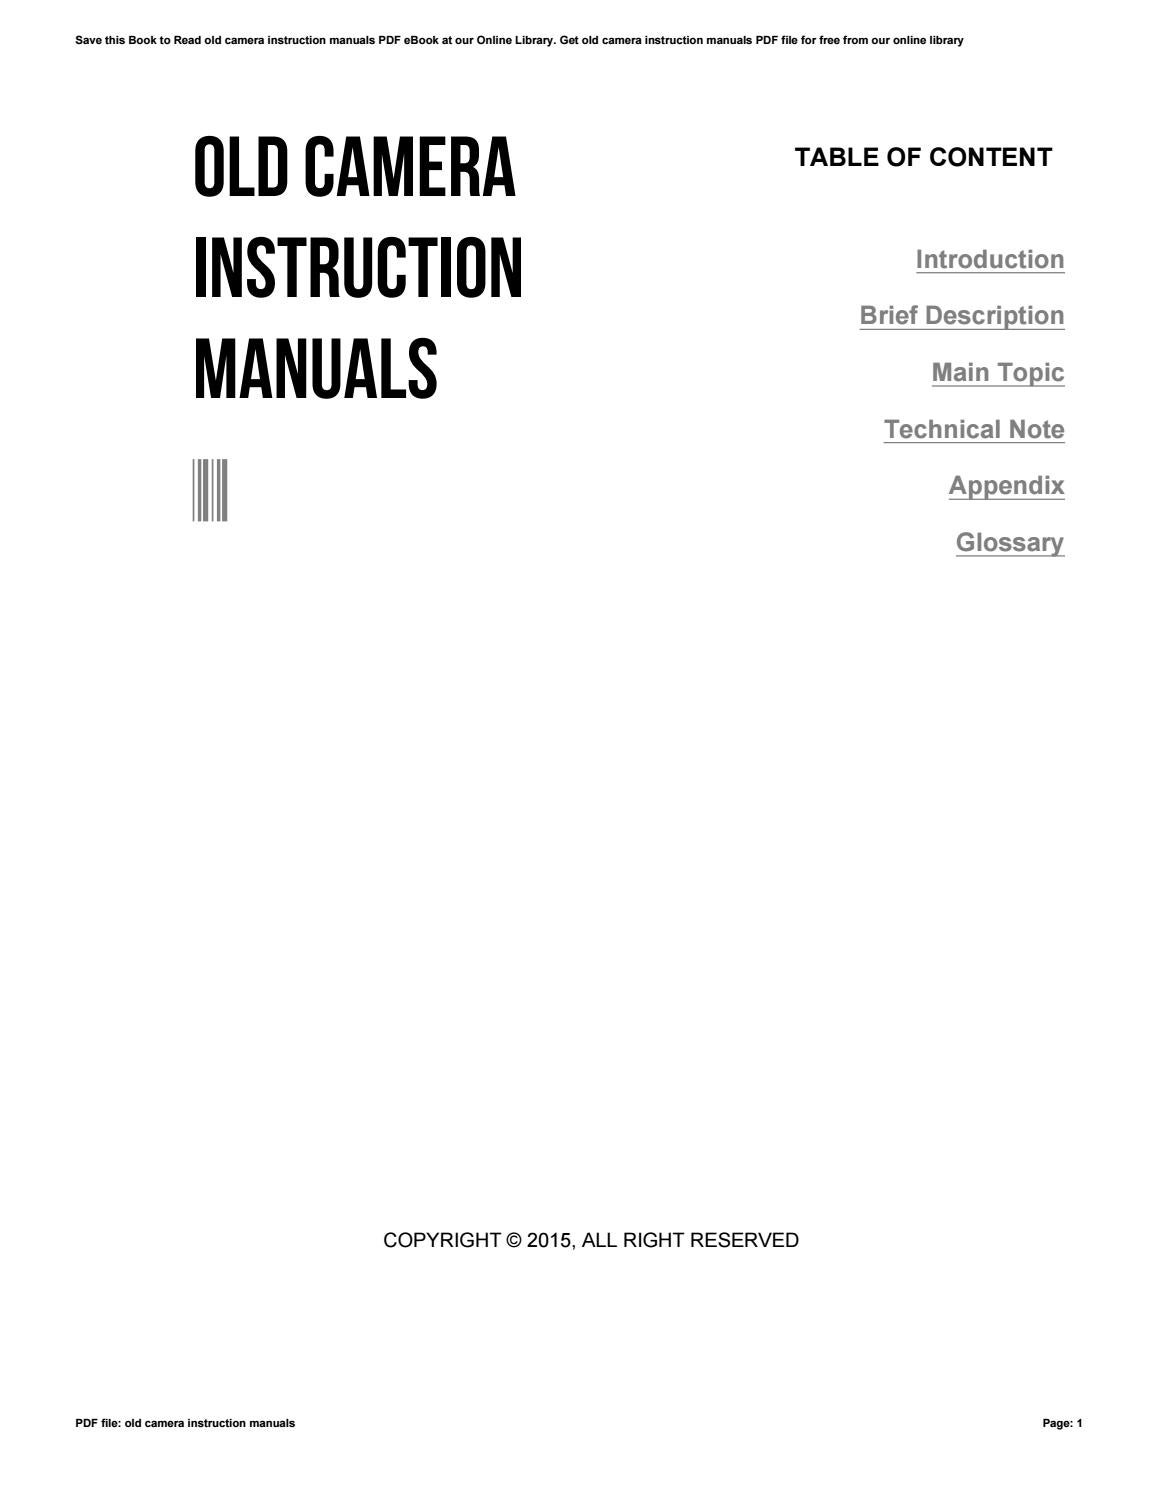 Old Camera Instruction Manuals By 4tb99 Issuu